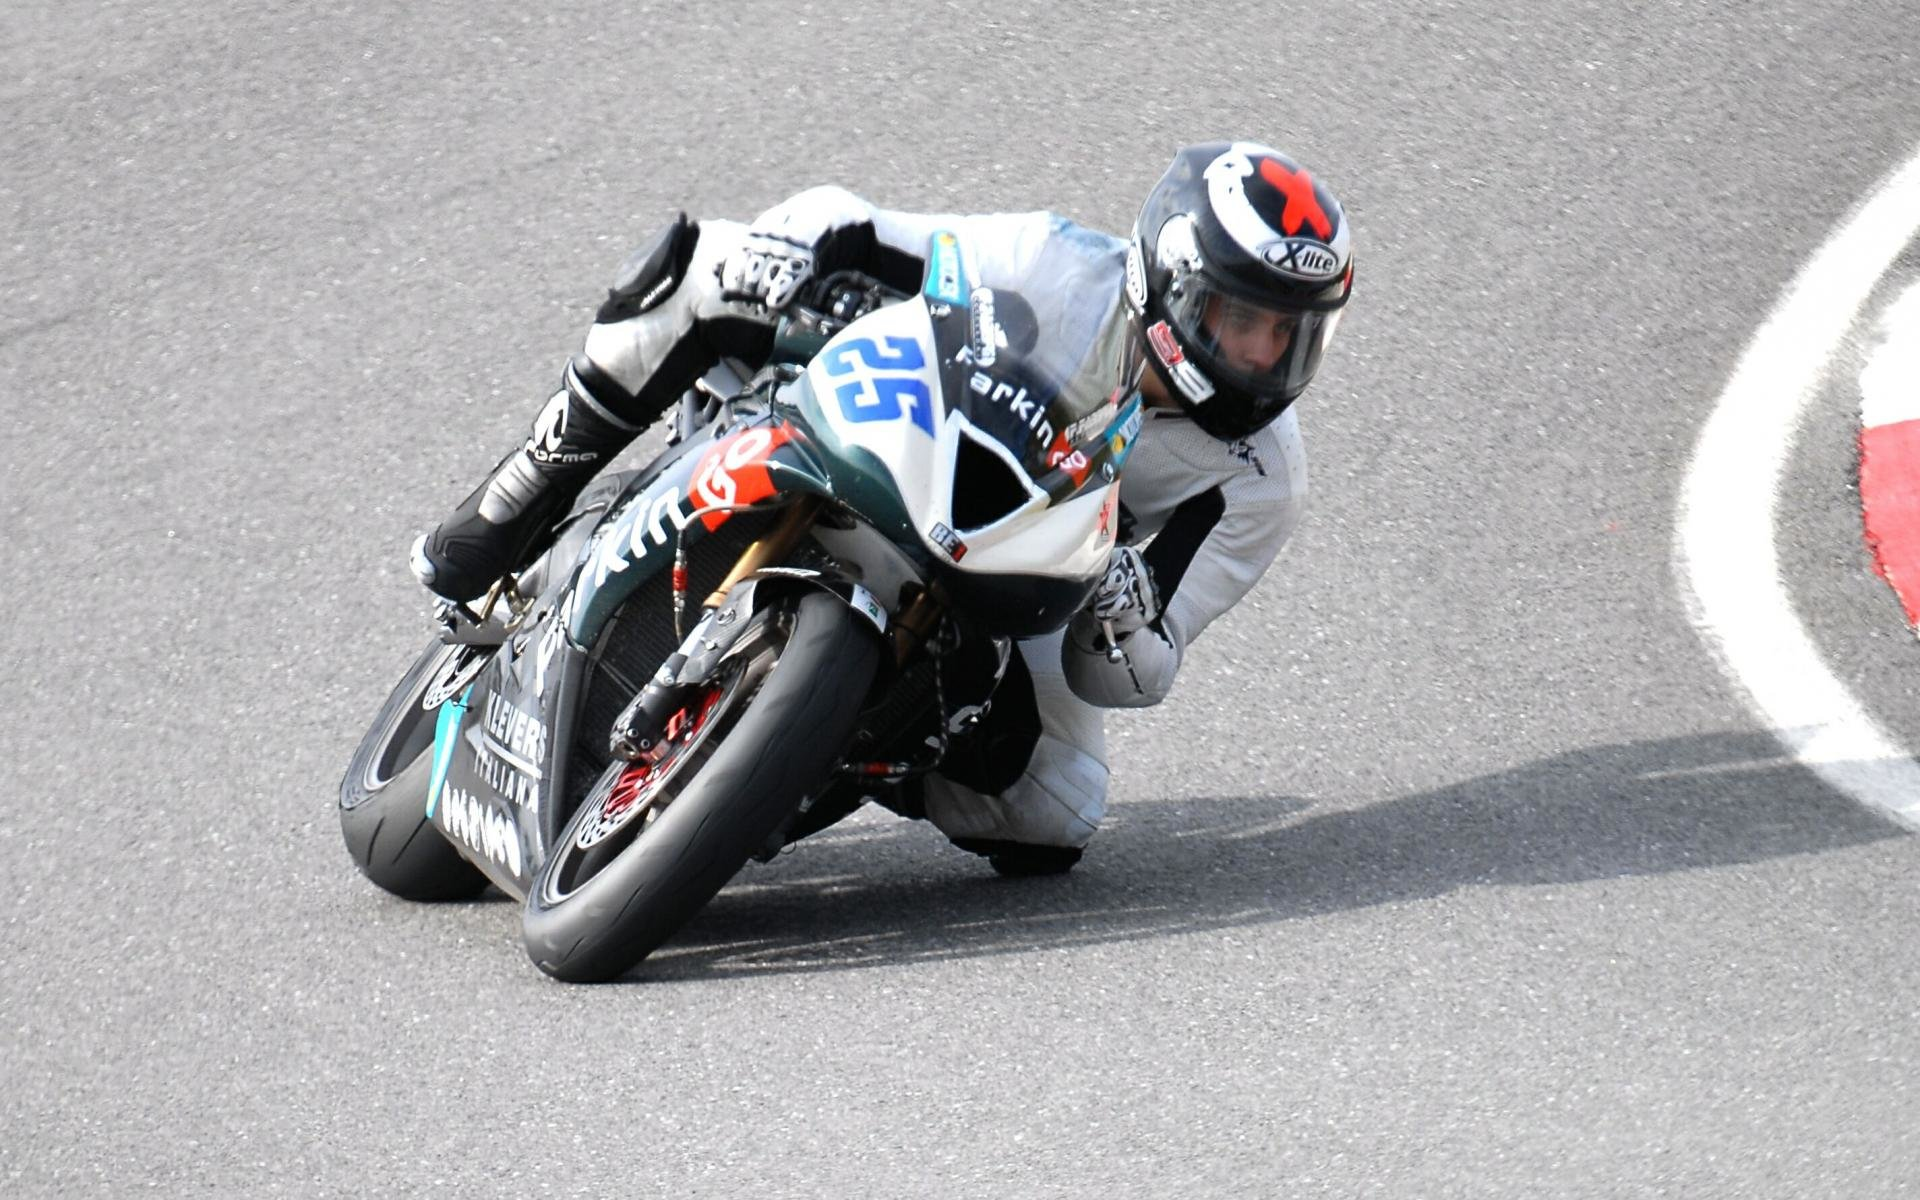 High Resolution Motorcycle Racing Hd 1920x1200 Wallpaper Id 315602